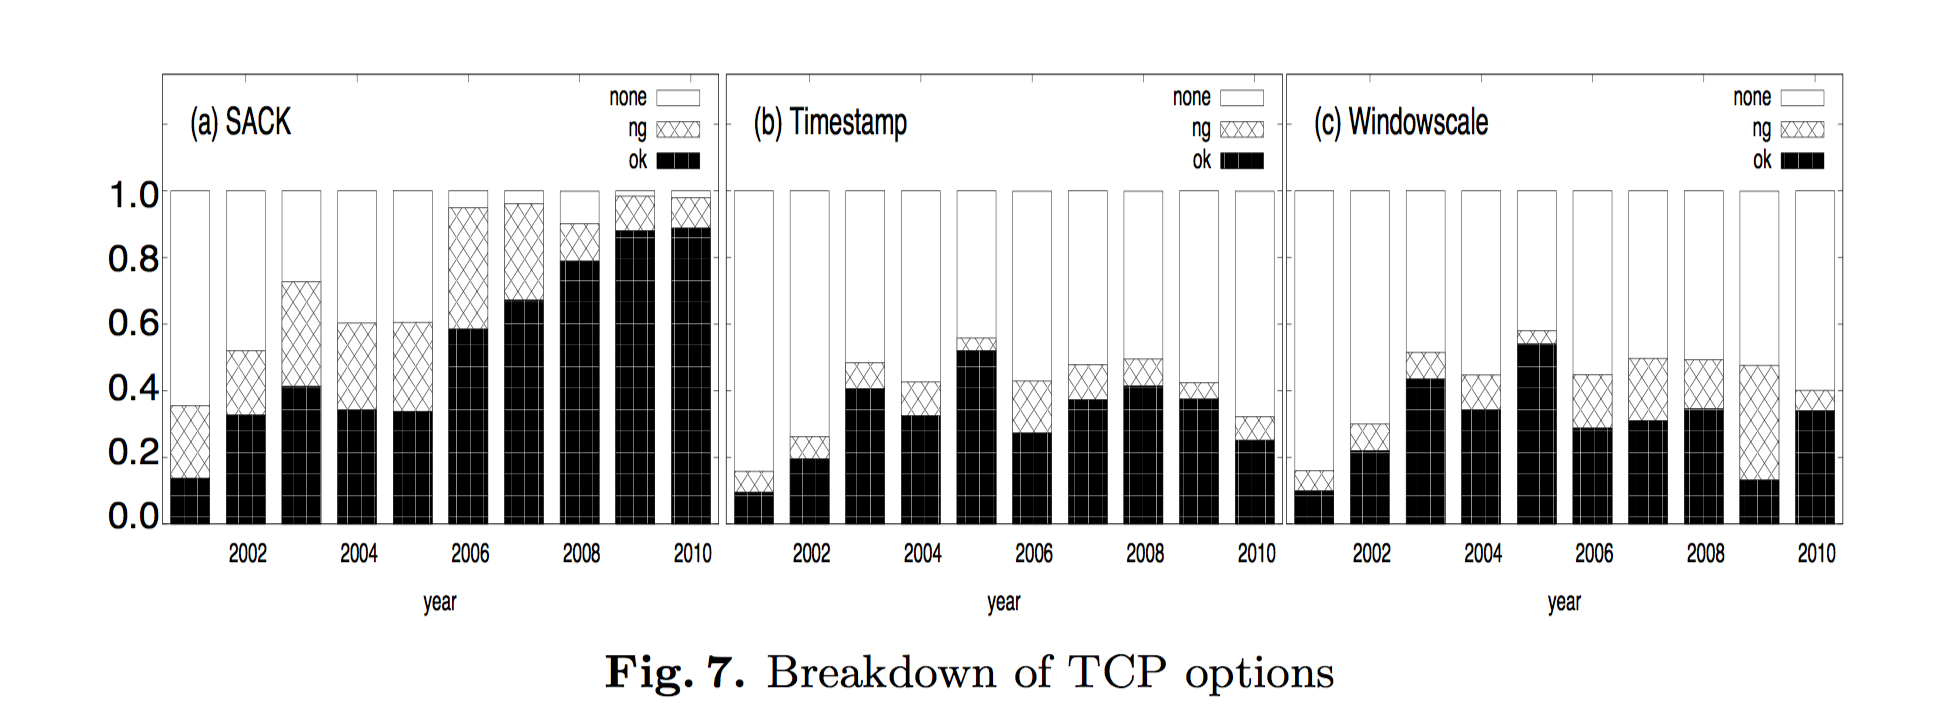 Deployment of TCP options over a decade